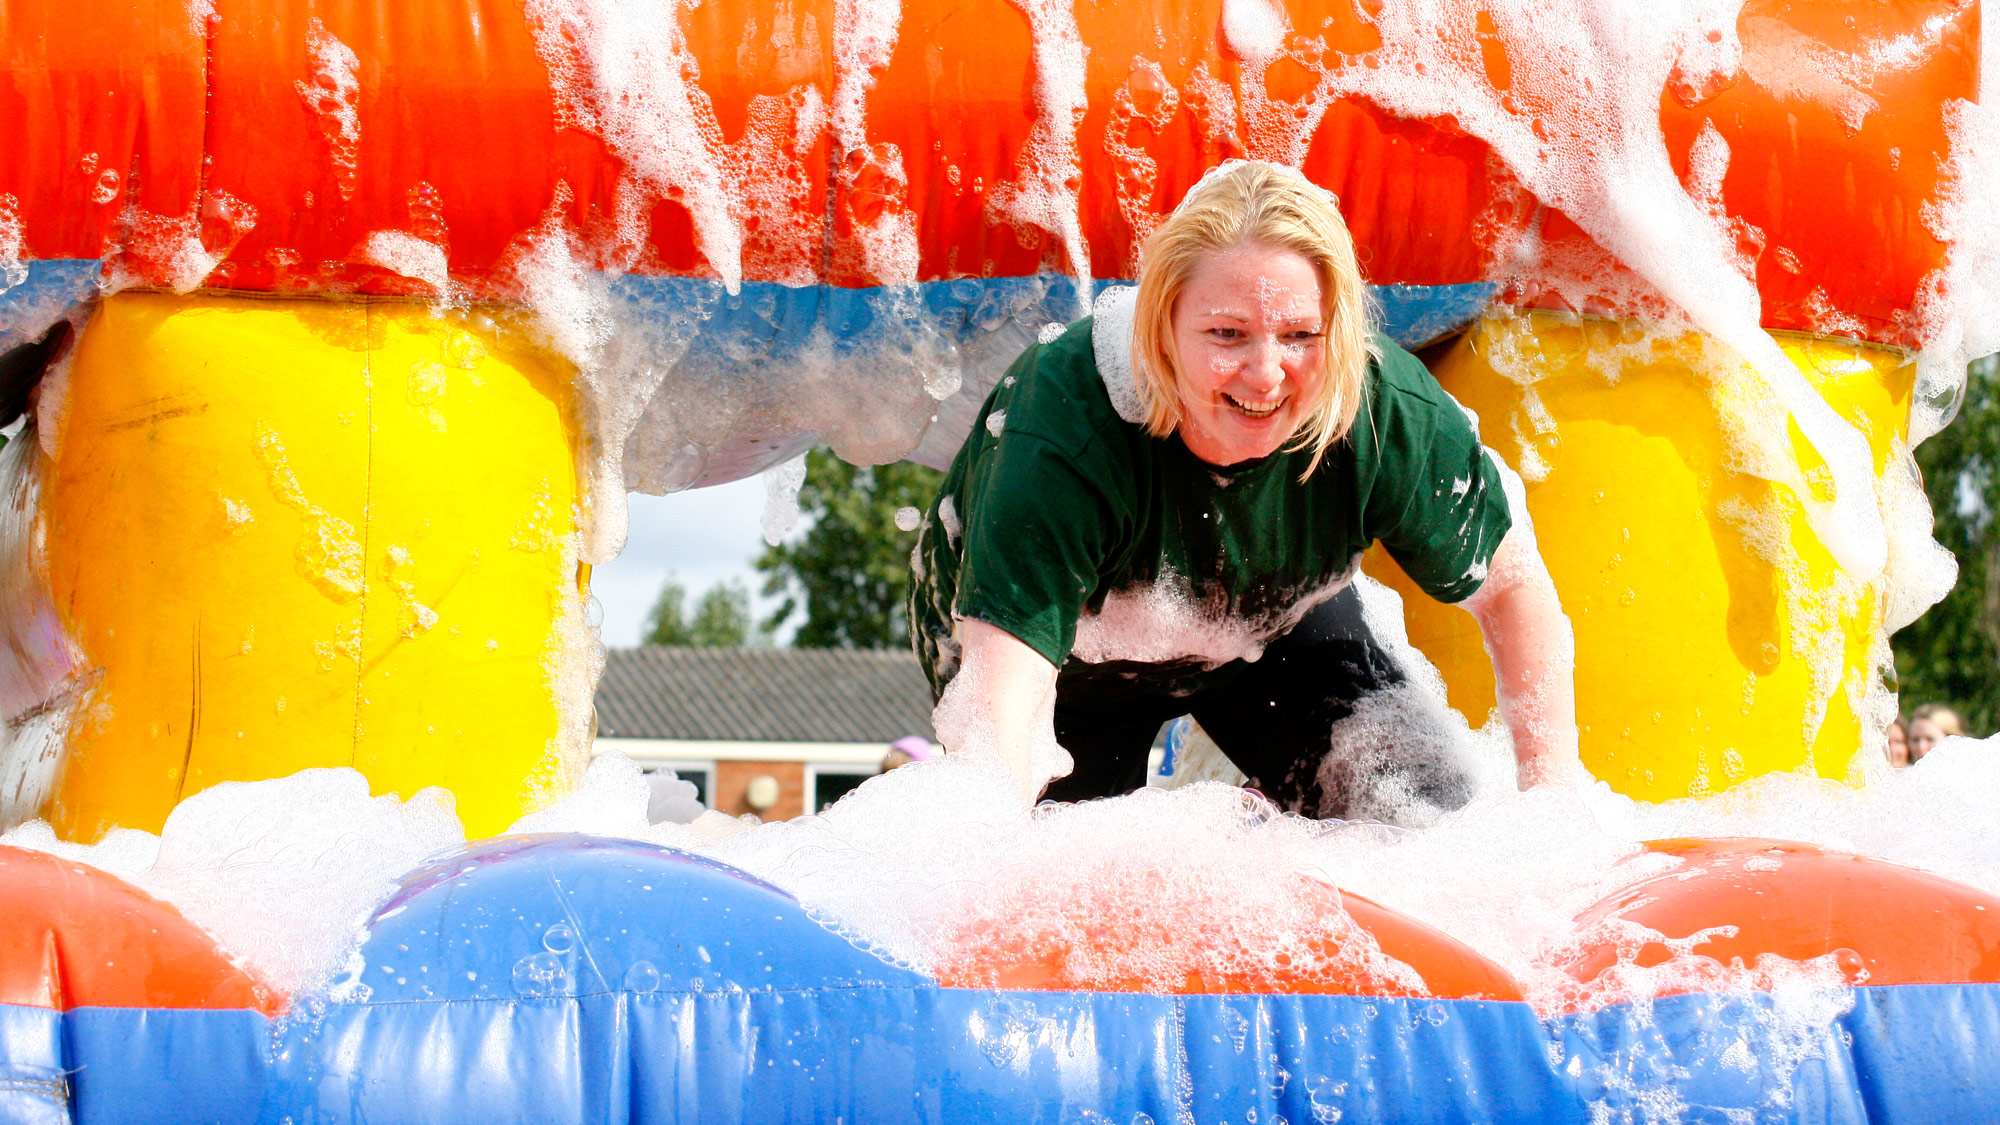 Having fun in the bubbles on It's A Knockout